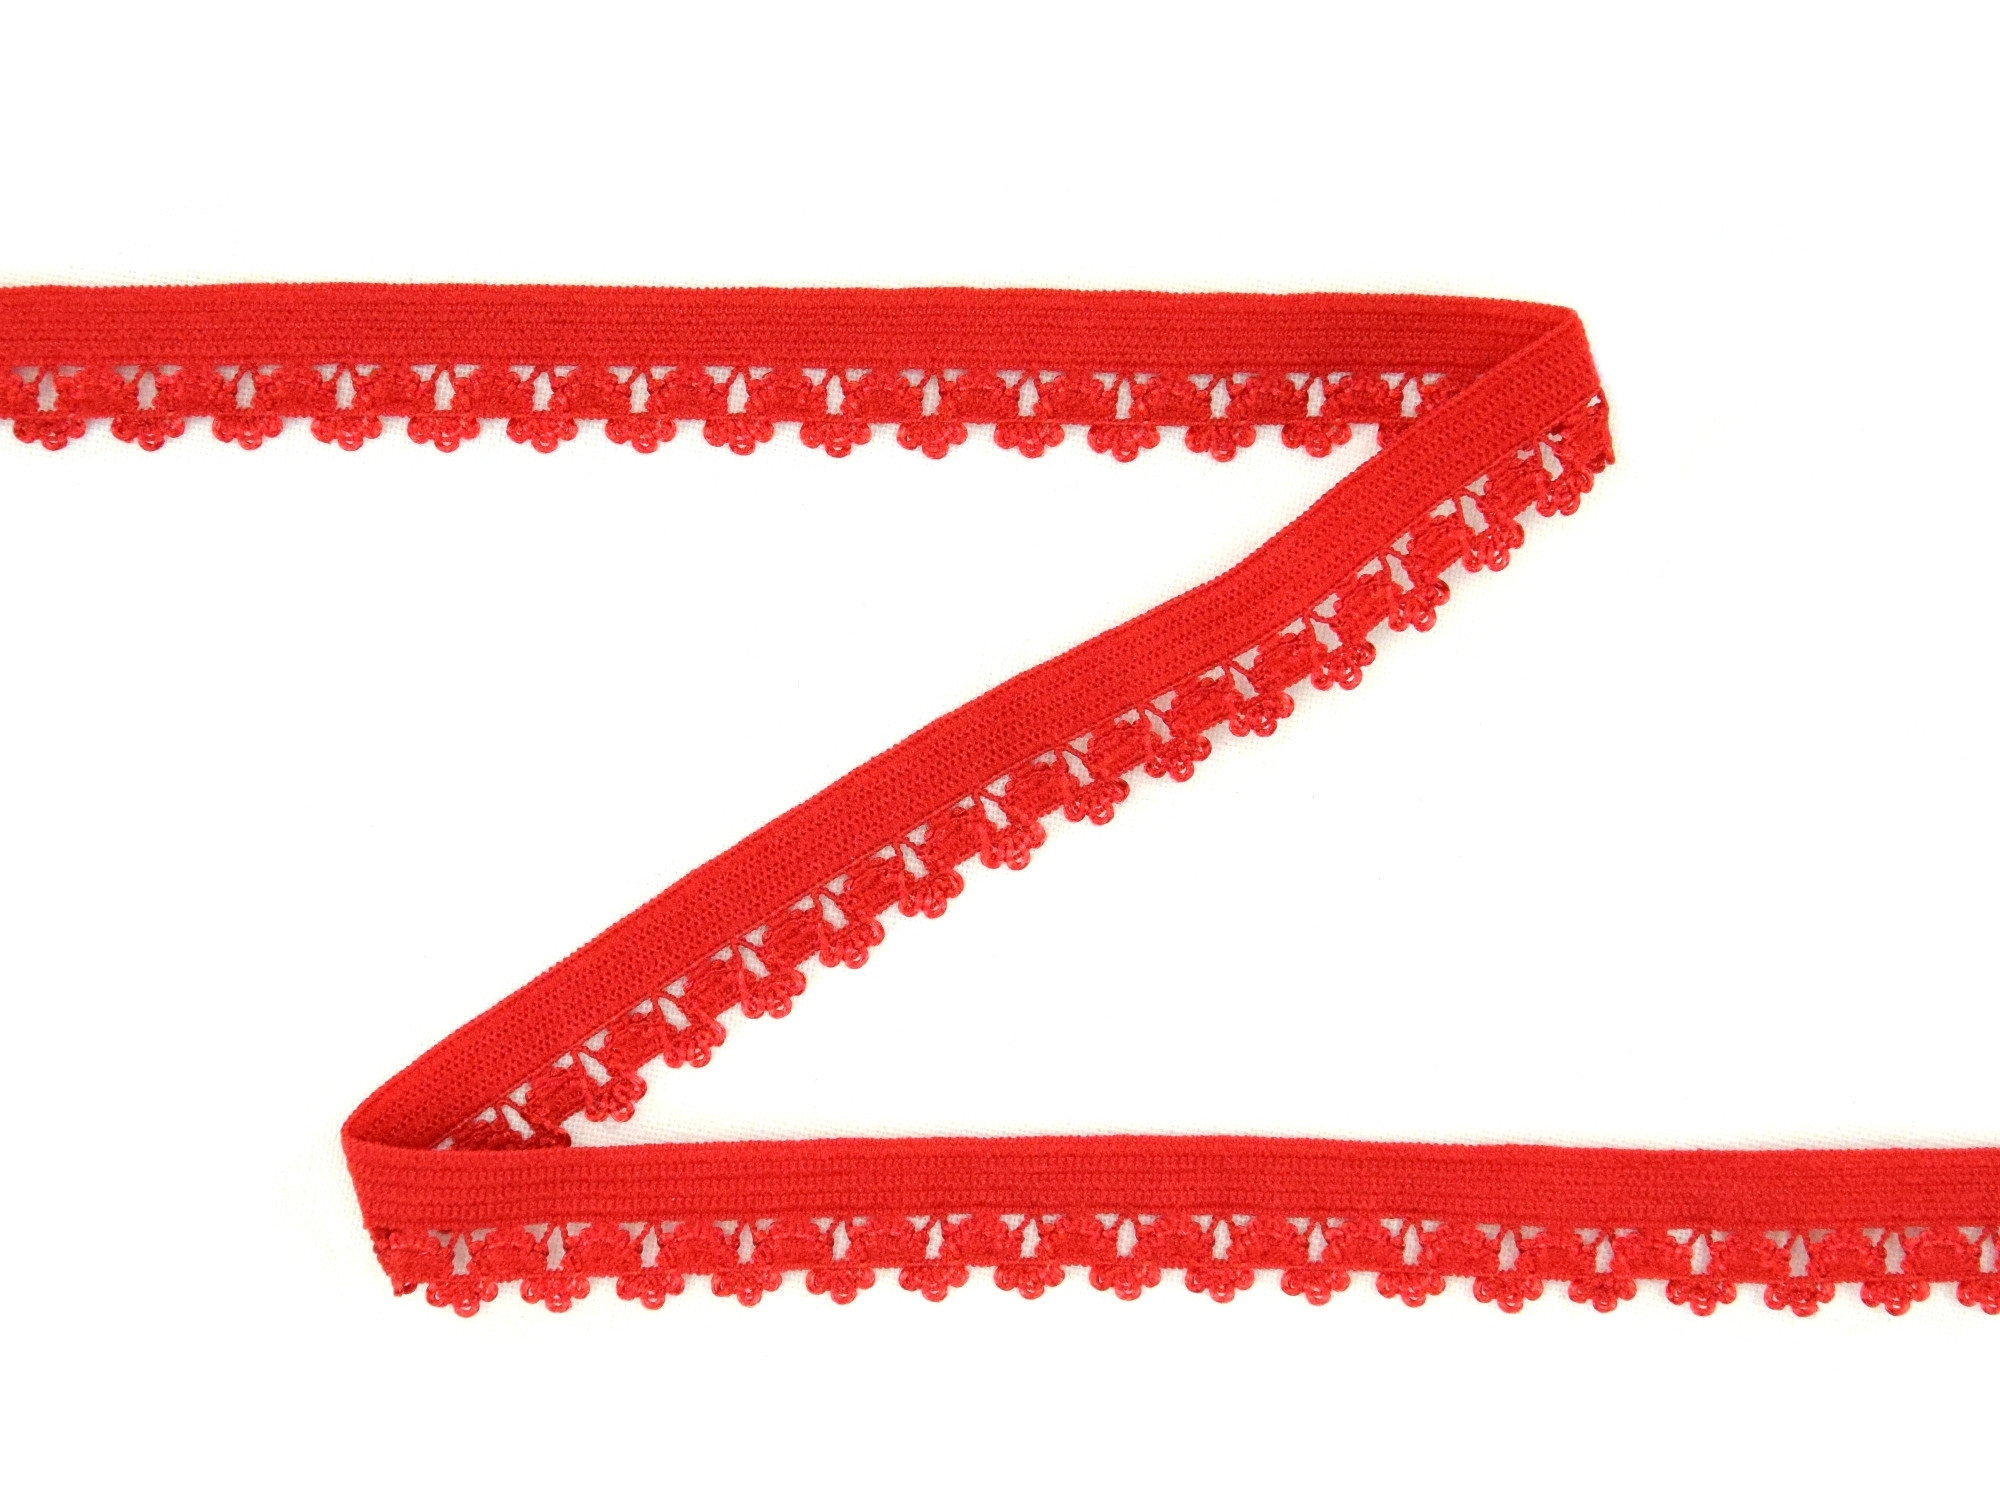 Elastic Binding Ribbon with flowers, red 14 mm | 30104 | rot